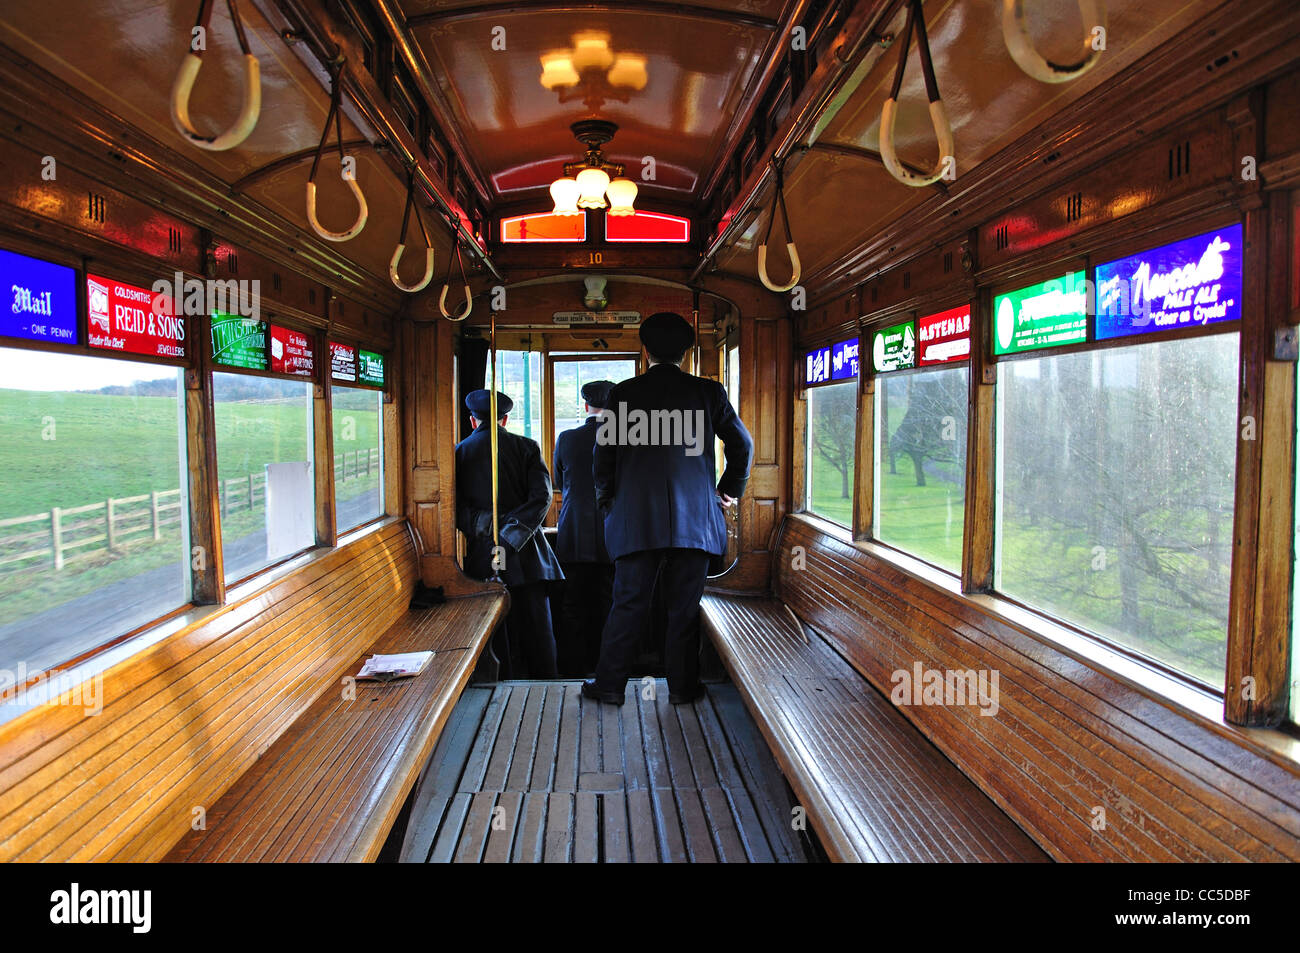 Interior of tram at Beamish, The North of England Open Air Museum, near Stanley, County Durham, England, United - Stock Image